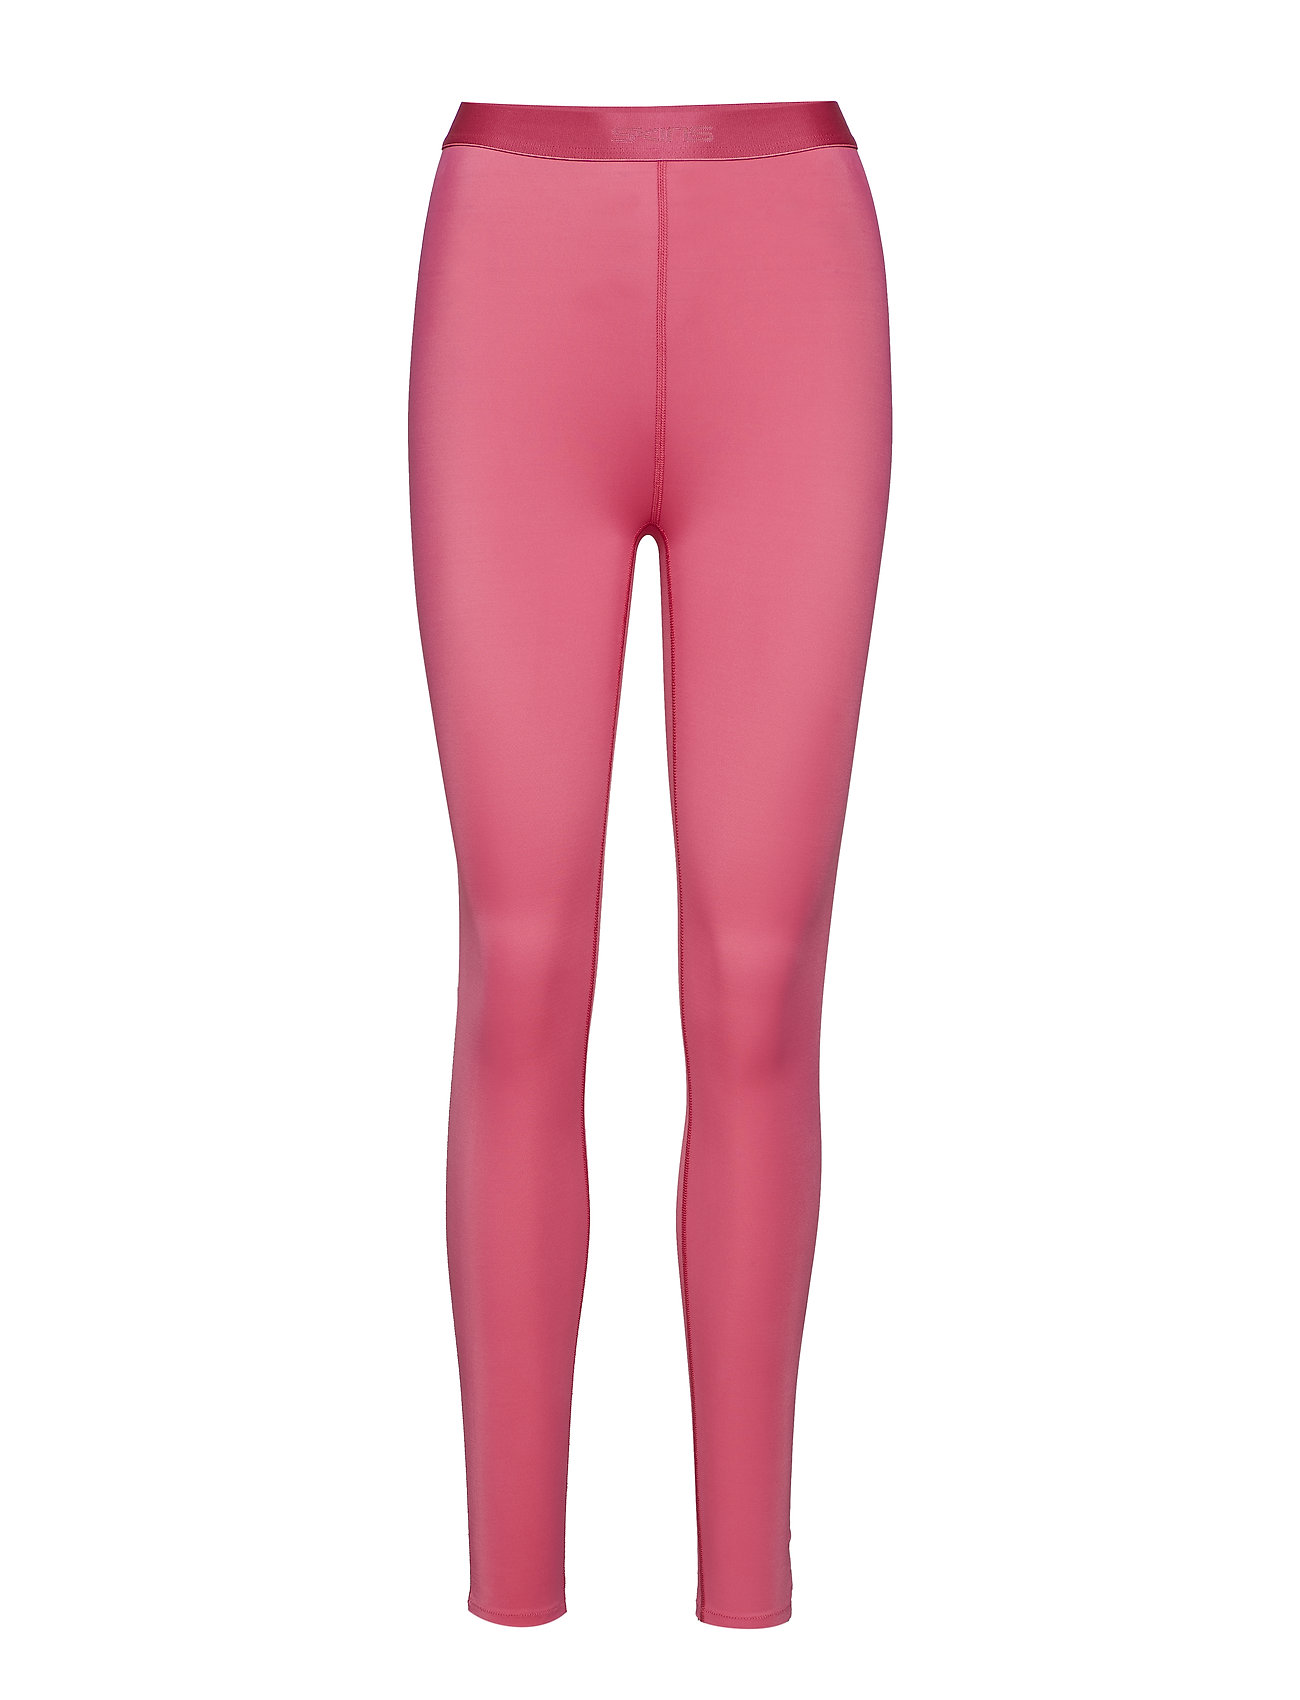 Skins DNAmic Womens 7/8 Tights - PINK